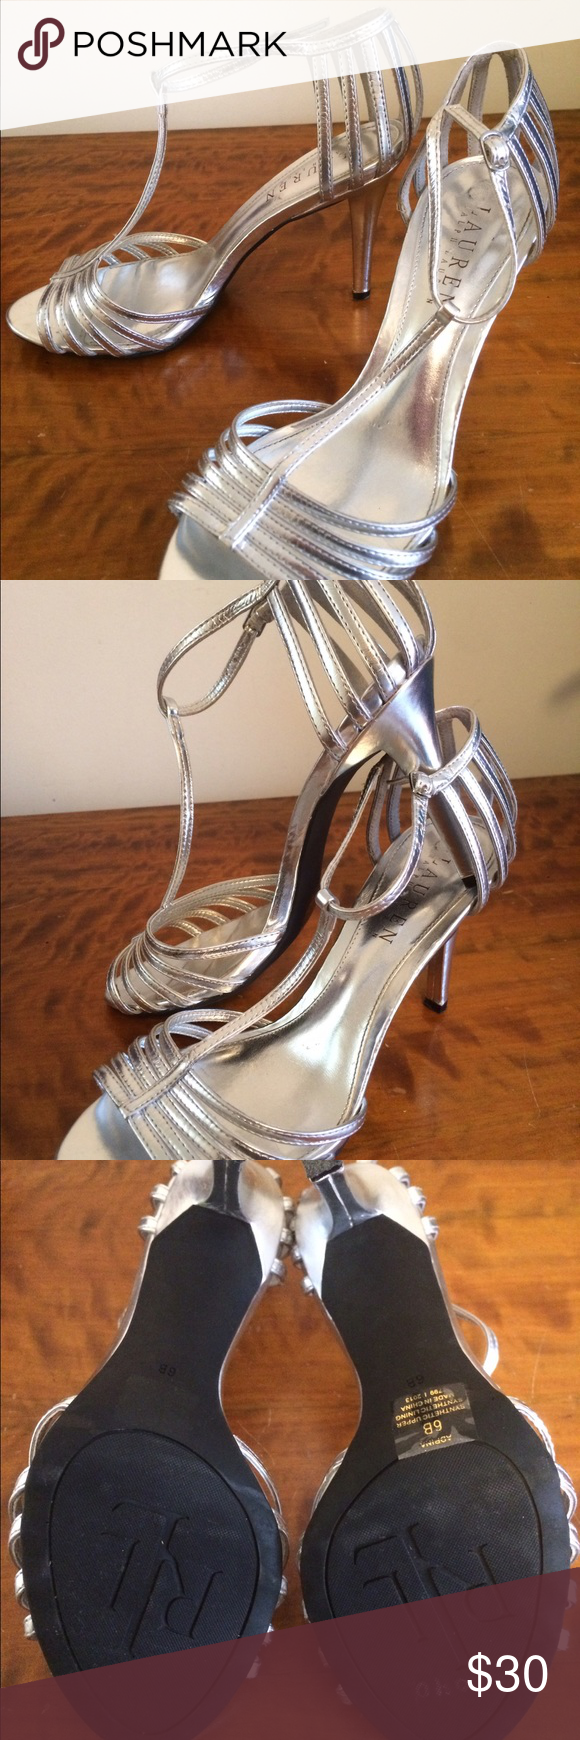 """Ralph Lauren Adrina Silver T Strap Heels Sz 6 Ralph Lauren """"Adrina"""" silver ankle t-strap heels. Size 6B with a 3.5"""" heel. Tried on for dress sizing, but never worn outside. Beautiful! Ralph Lauren Shoes Heels"""